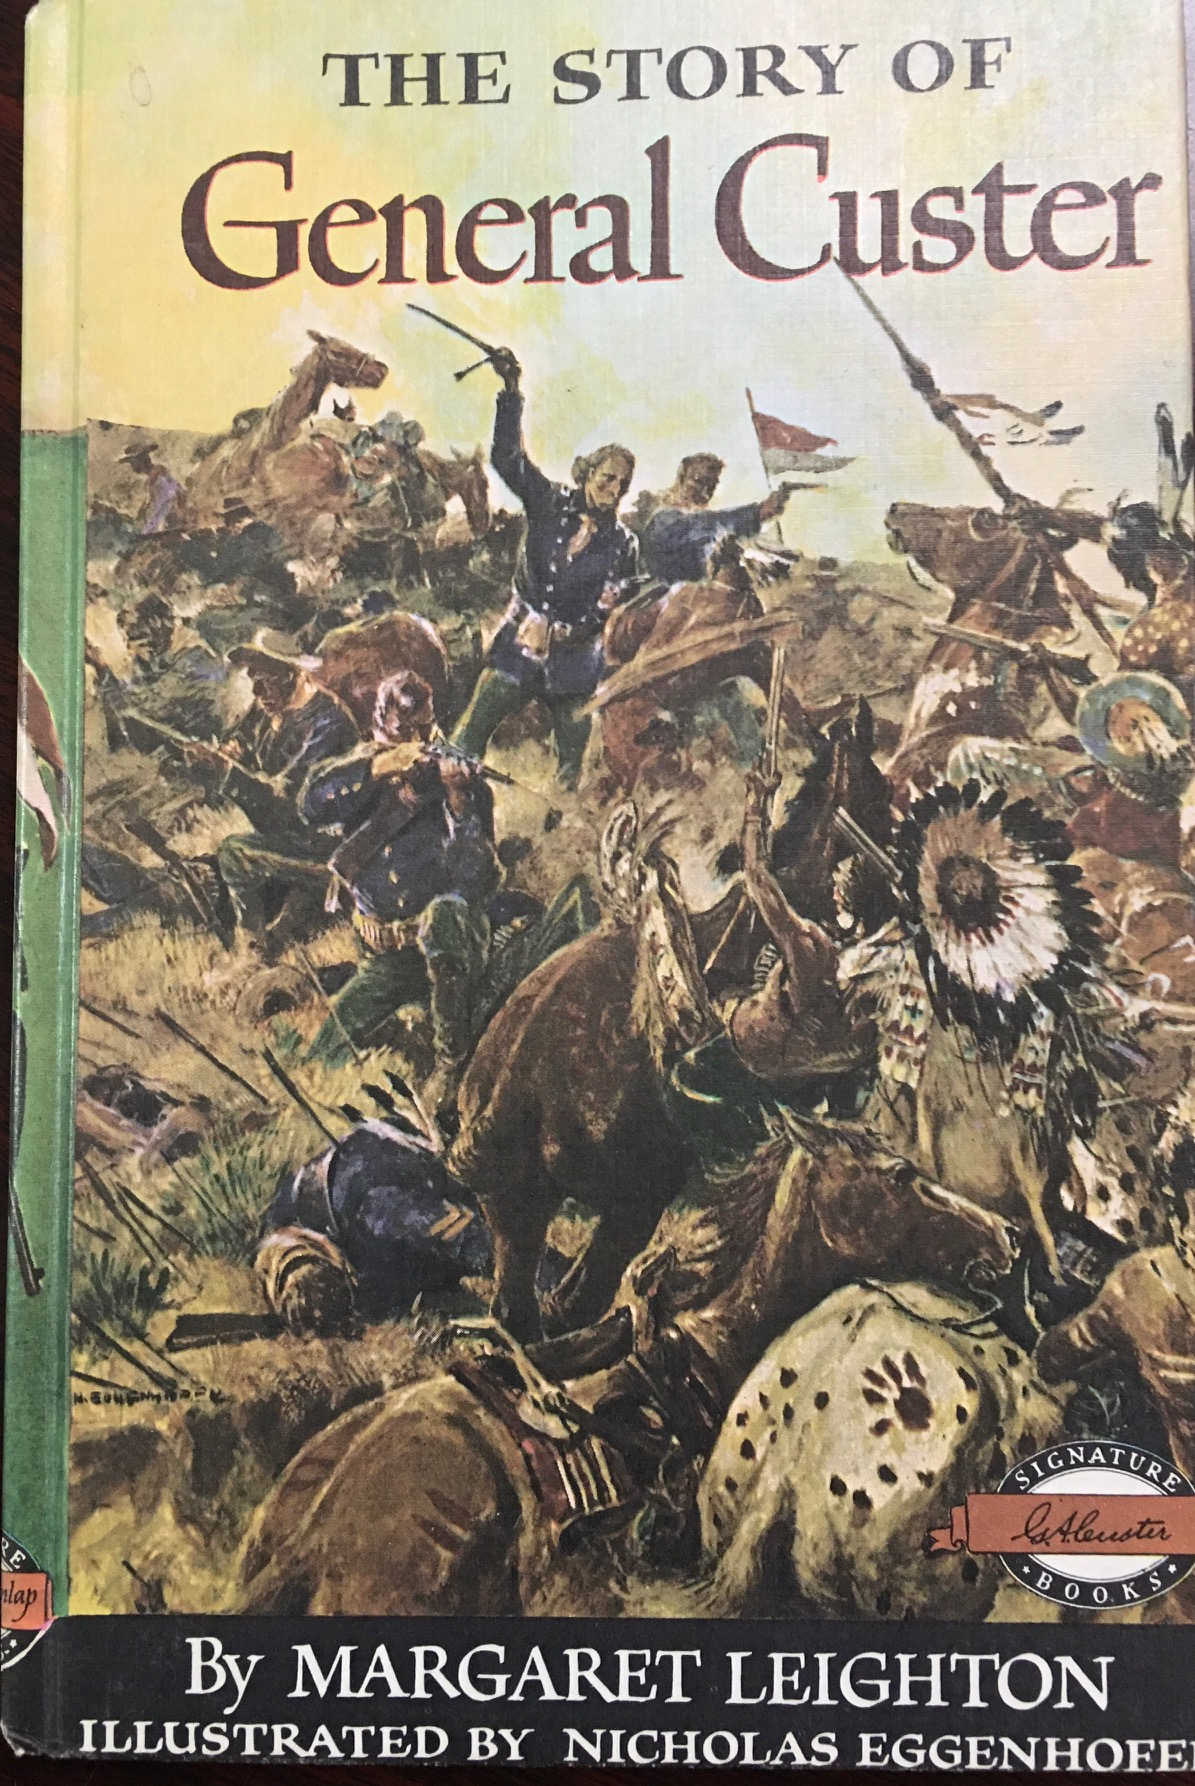 Image for Weekly Reader Books presents: The Story of General Custer (Signature Books - #26)